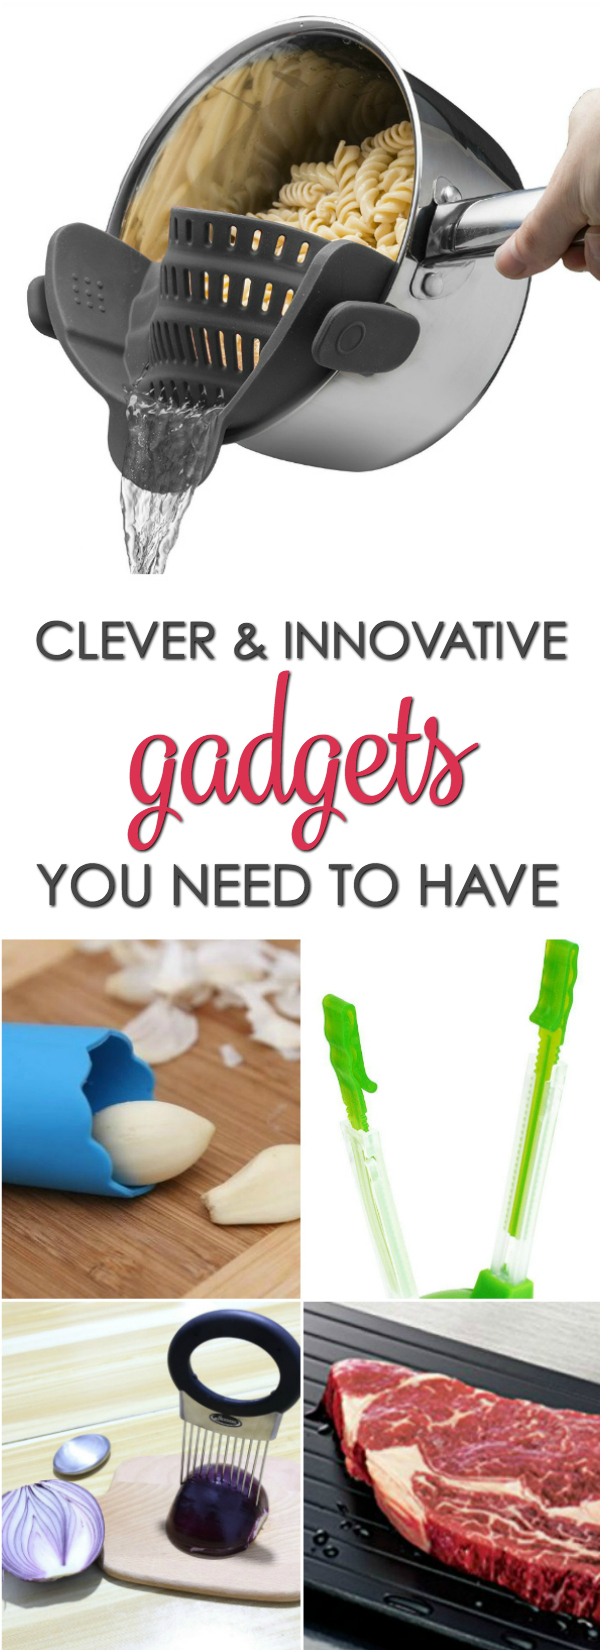 Clever Kitchen Gadgets You Need To Have